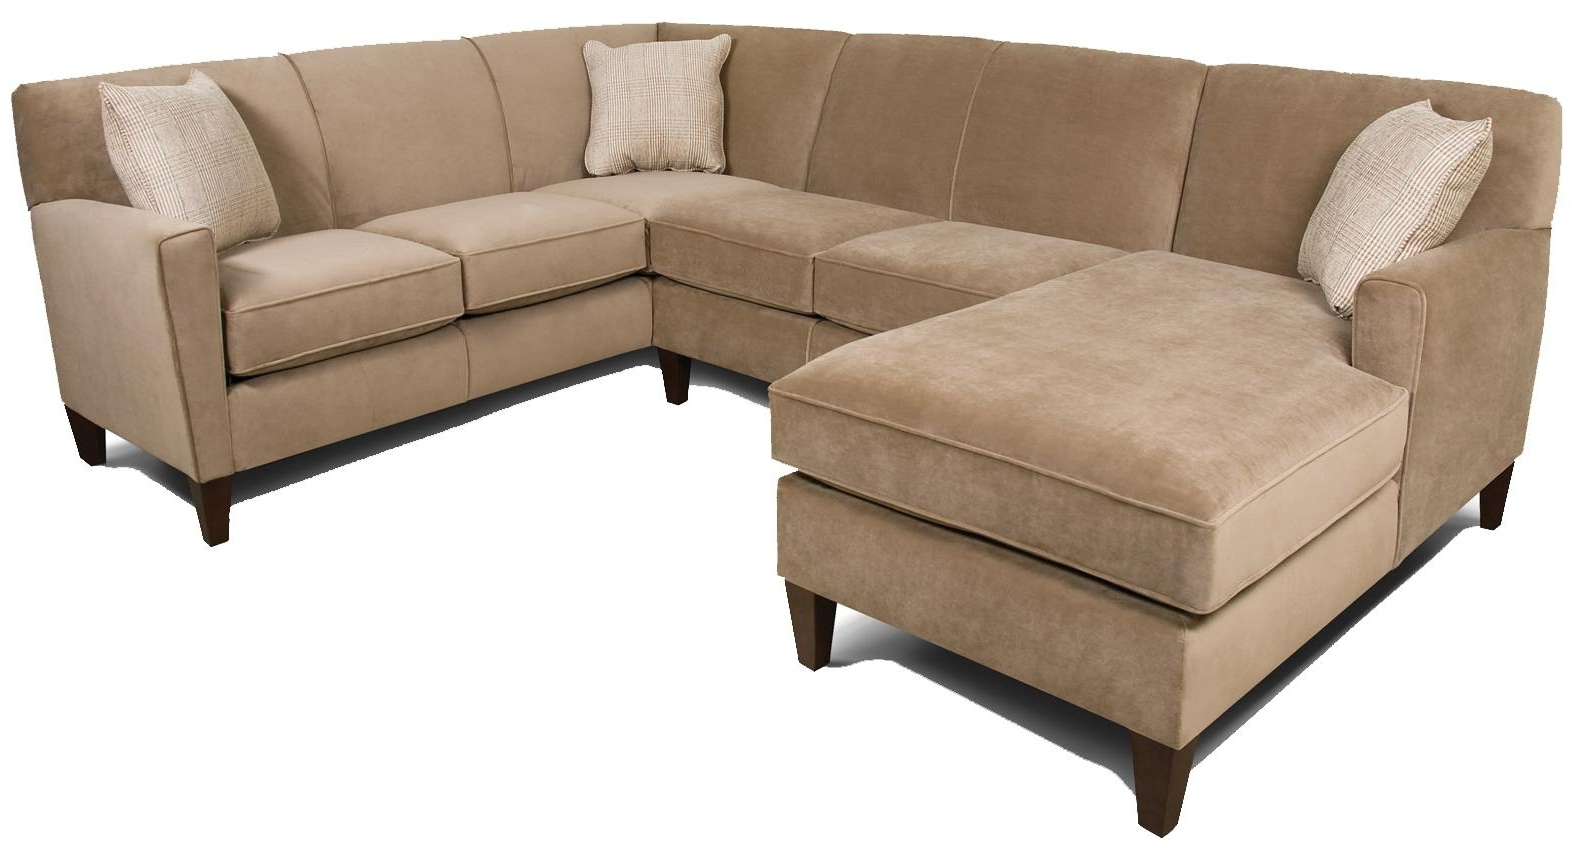 England Collegedale Contemporary 3 Piece Sectional Sofa With Laf Regarding Latest Green Bay Wi Sectional Sofas (View 14 of 20)